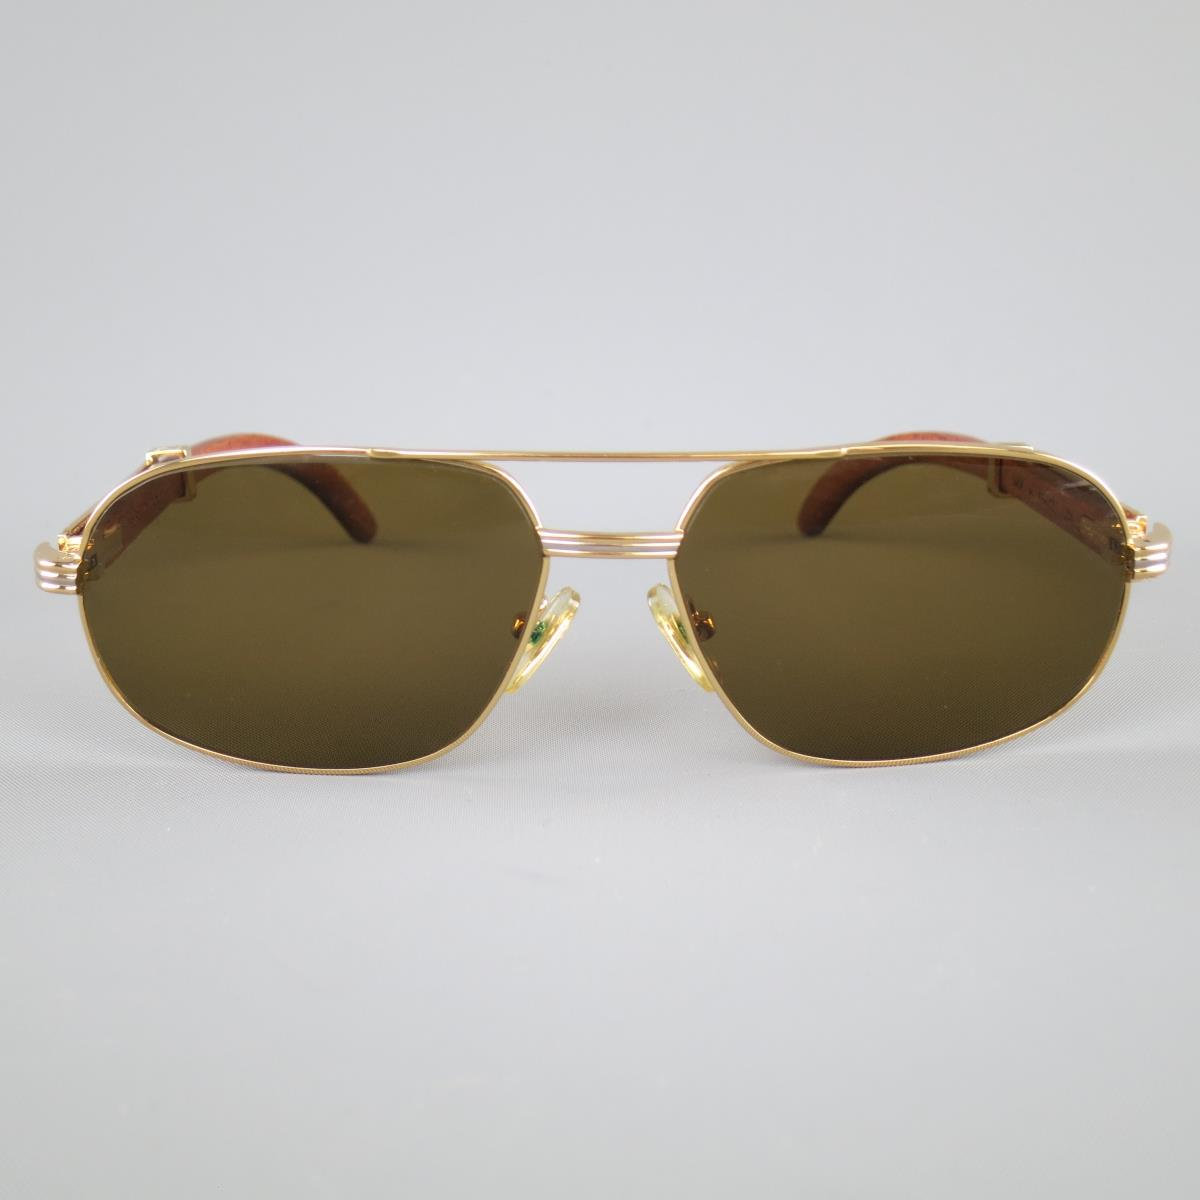 ef94e8850af Preowned Vintage Cartier Gold Tone amp Wood Frame Brown Lenses